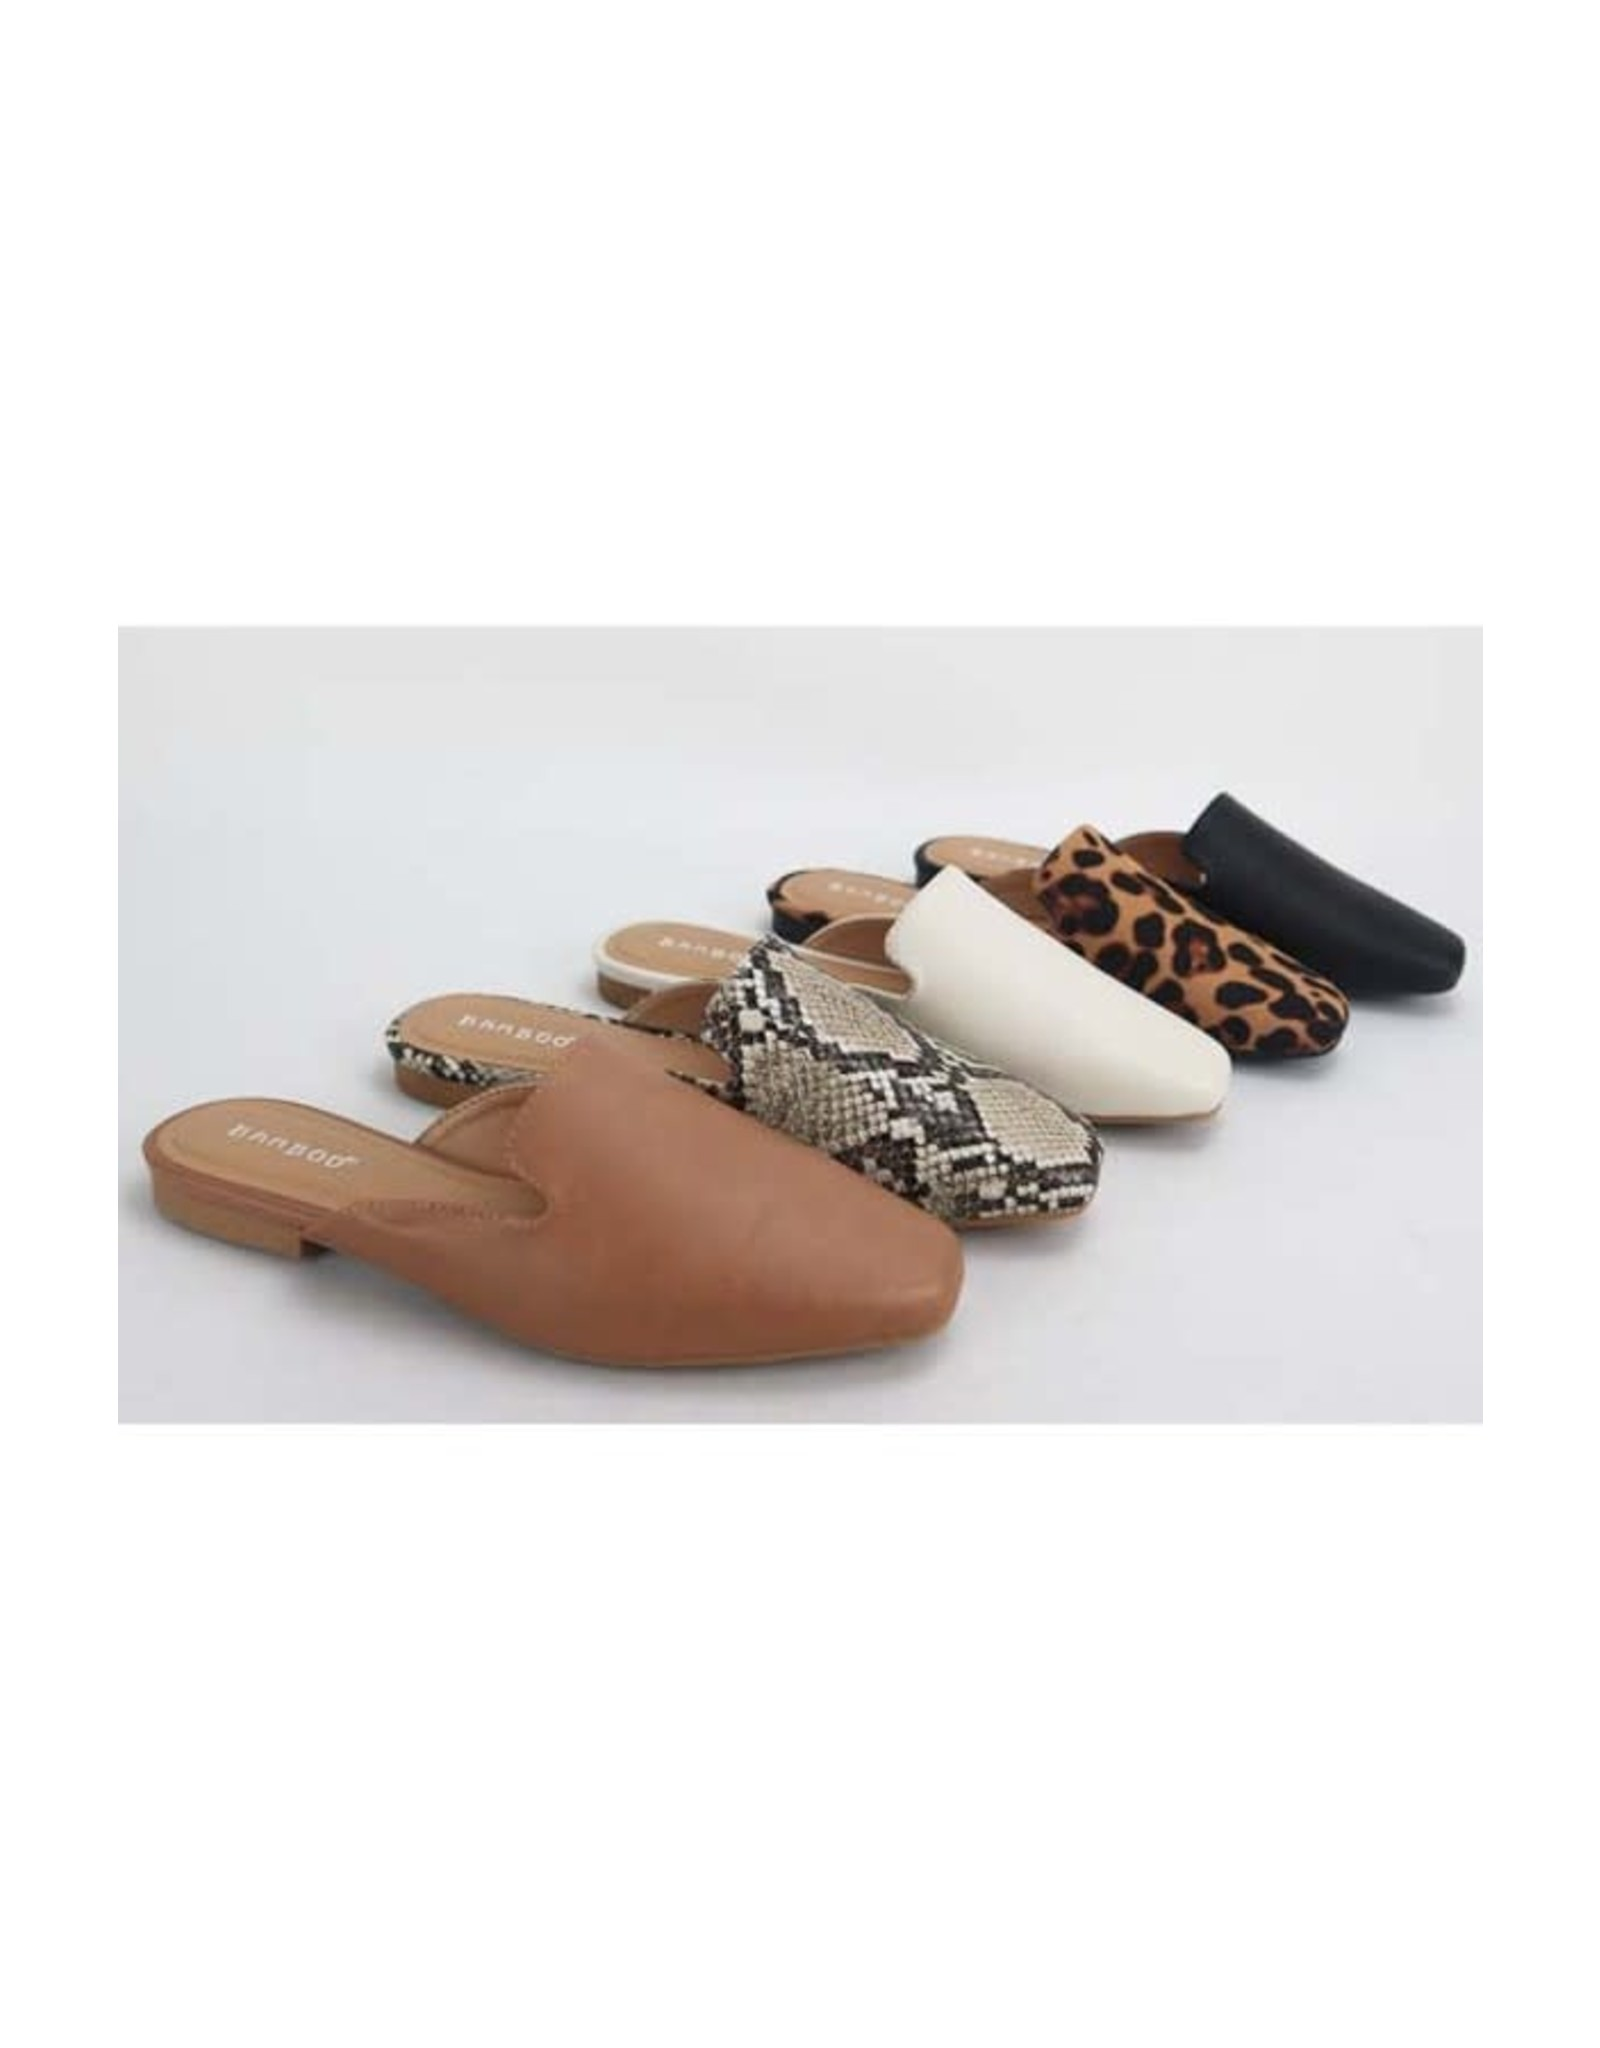 Sweep - Faux leather flat mules (leopard)